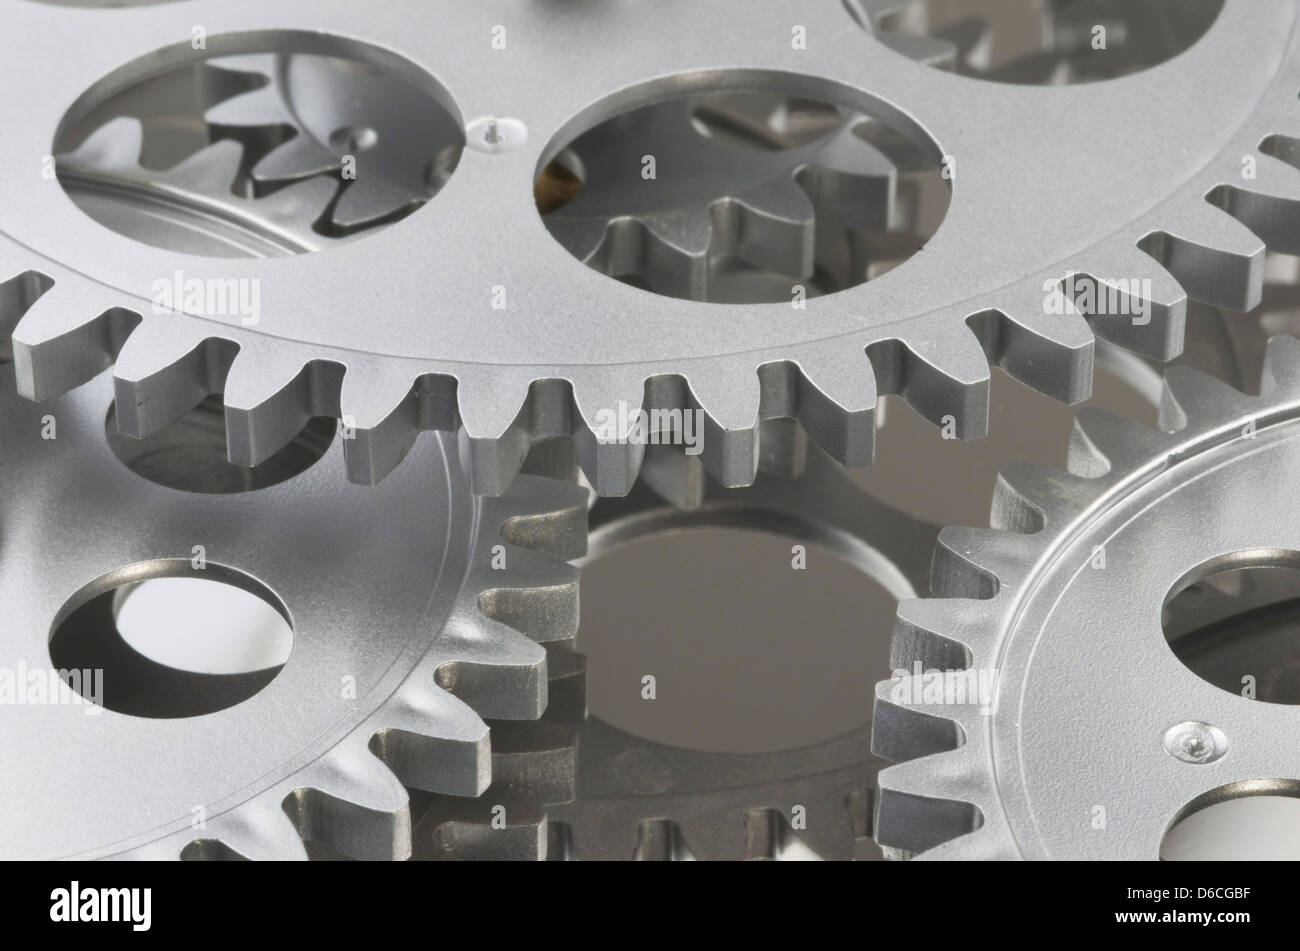 Close up of gray gears layered and interlocked - Stock Image